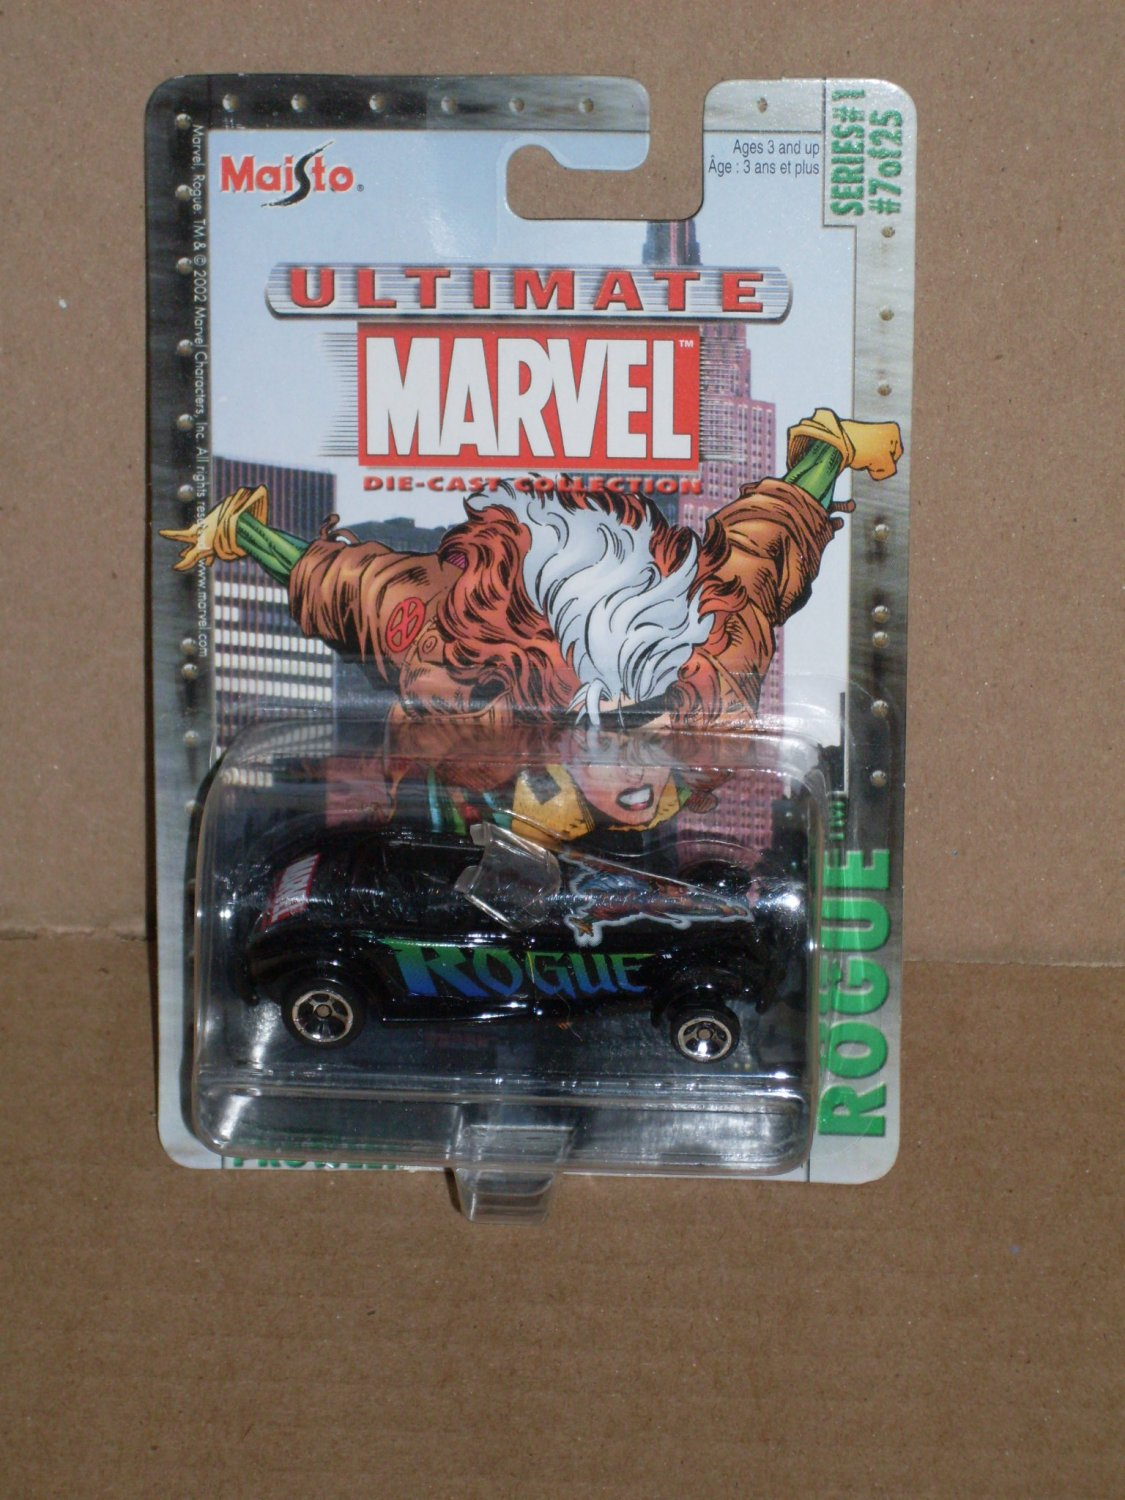 Maisto X-Mens Rogue Ultimate Marvel Die Cast Collection (2002)